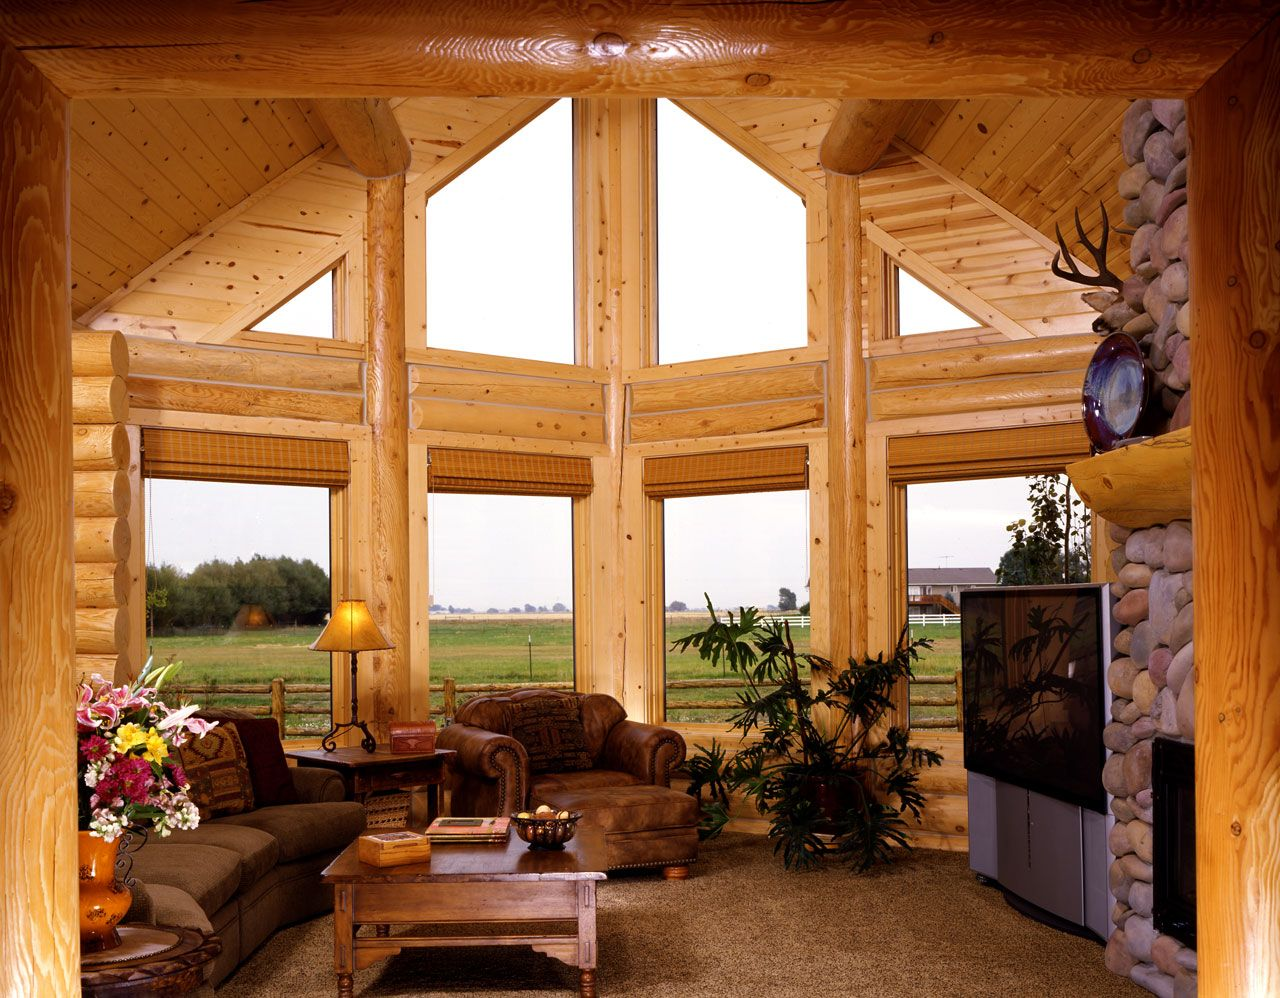 Living Room Decorating Ideas Log Cabin fabulous log home interior decorating idea for living room with